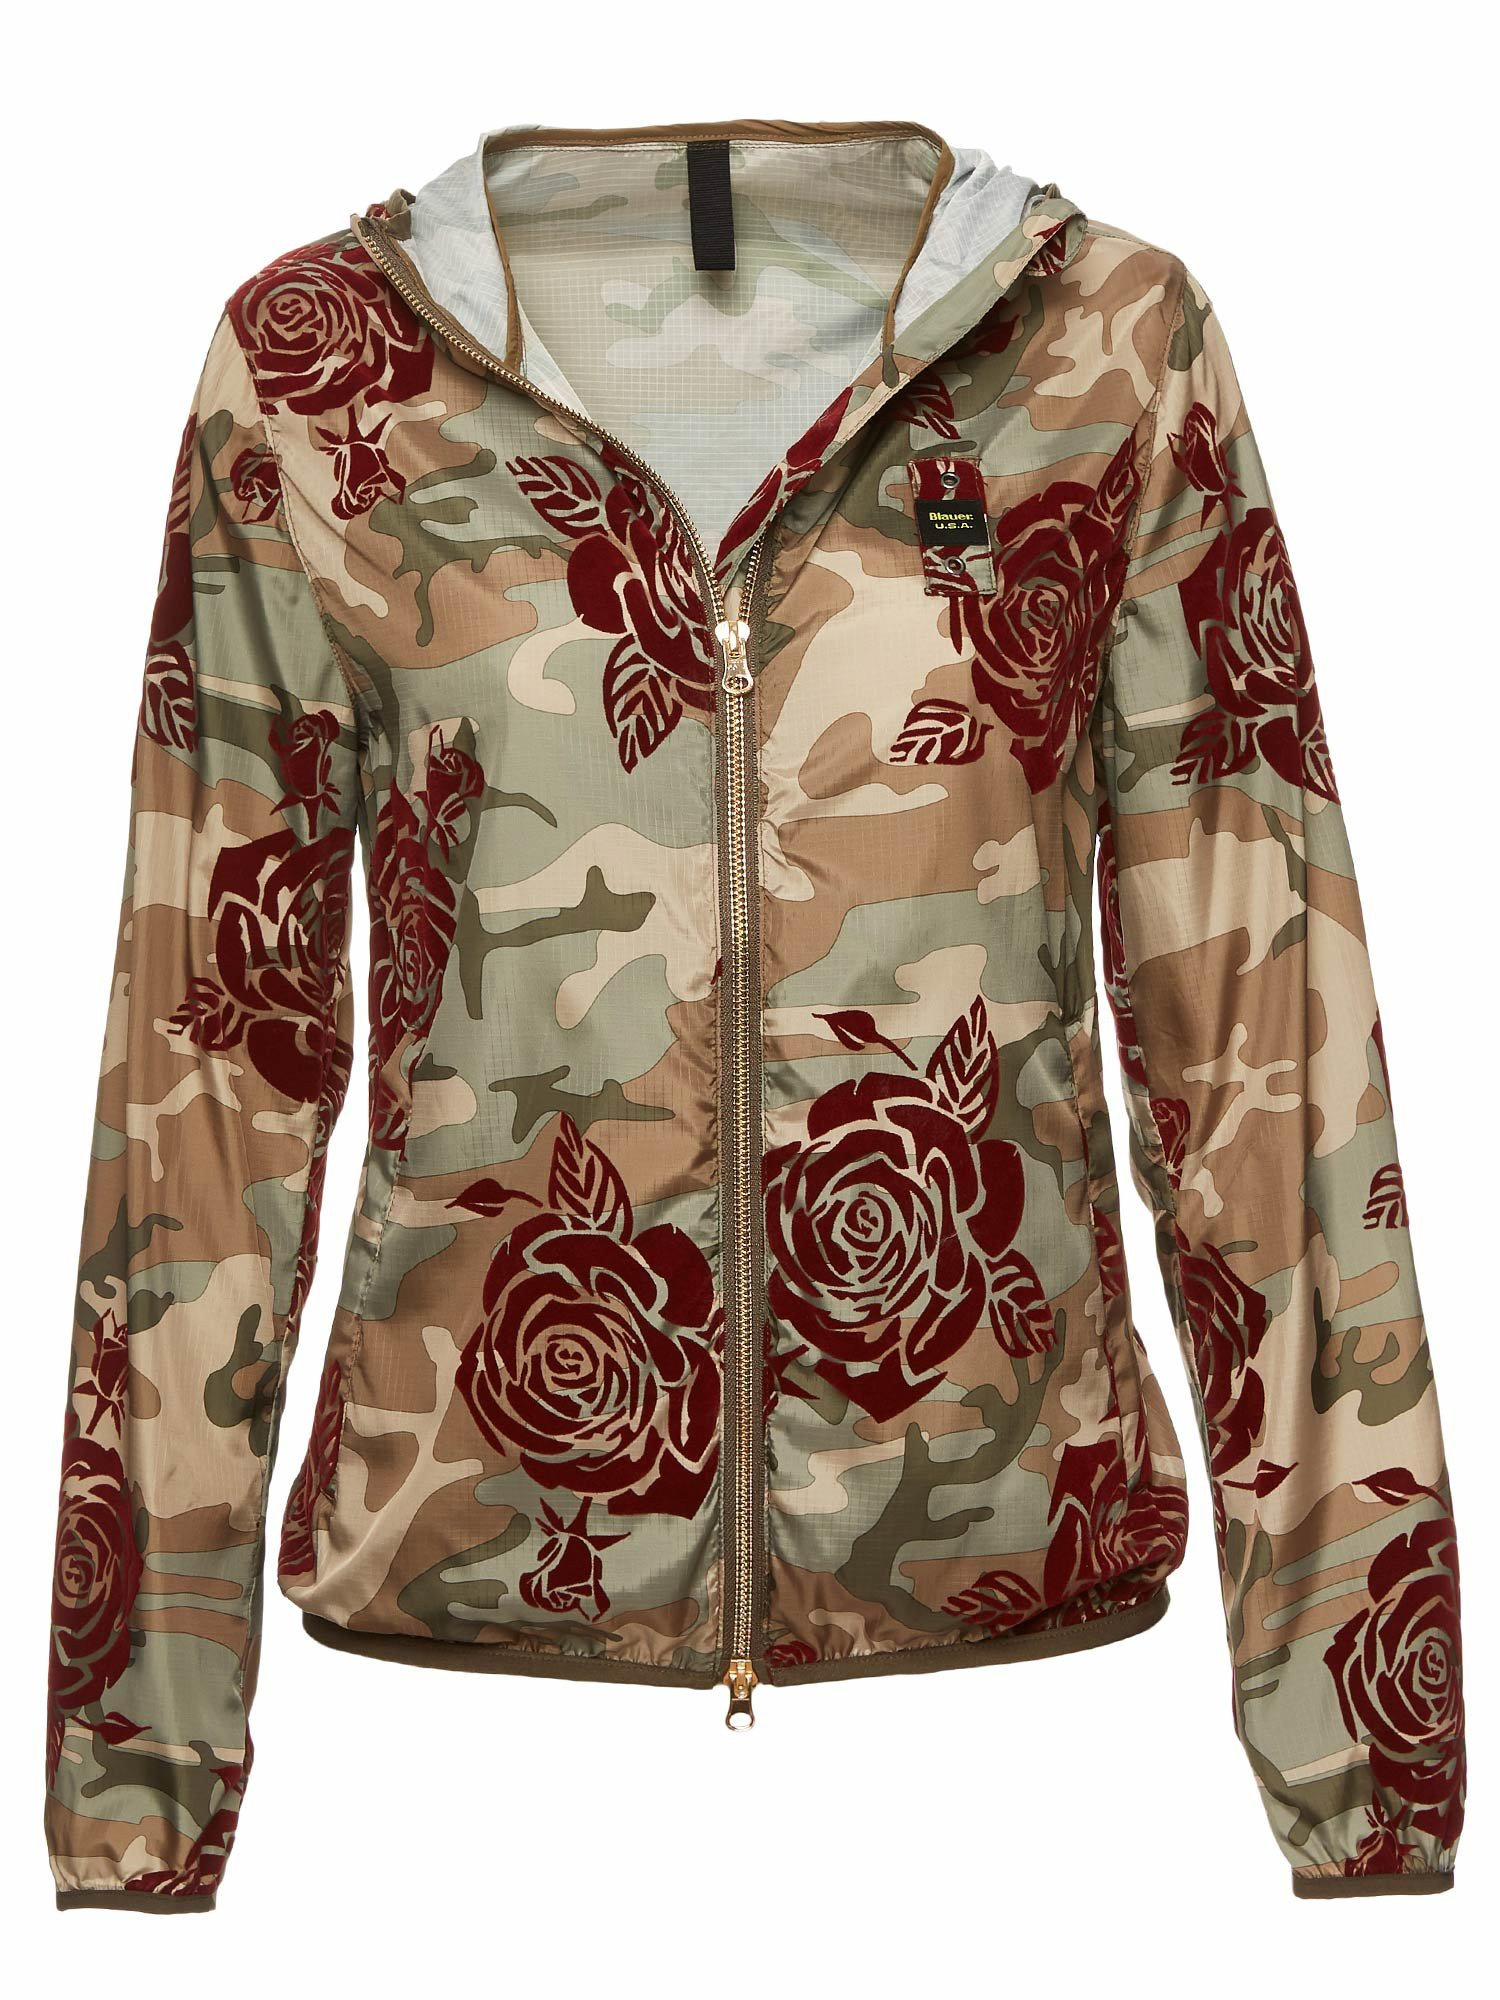 Blauer - LAYLA WINDBREAKER WITH FLORAL MOTIF - Green Reef - Blauer